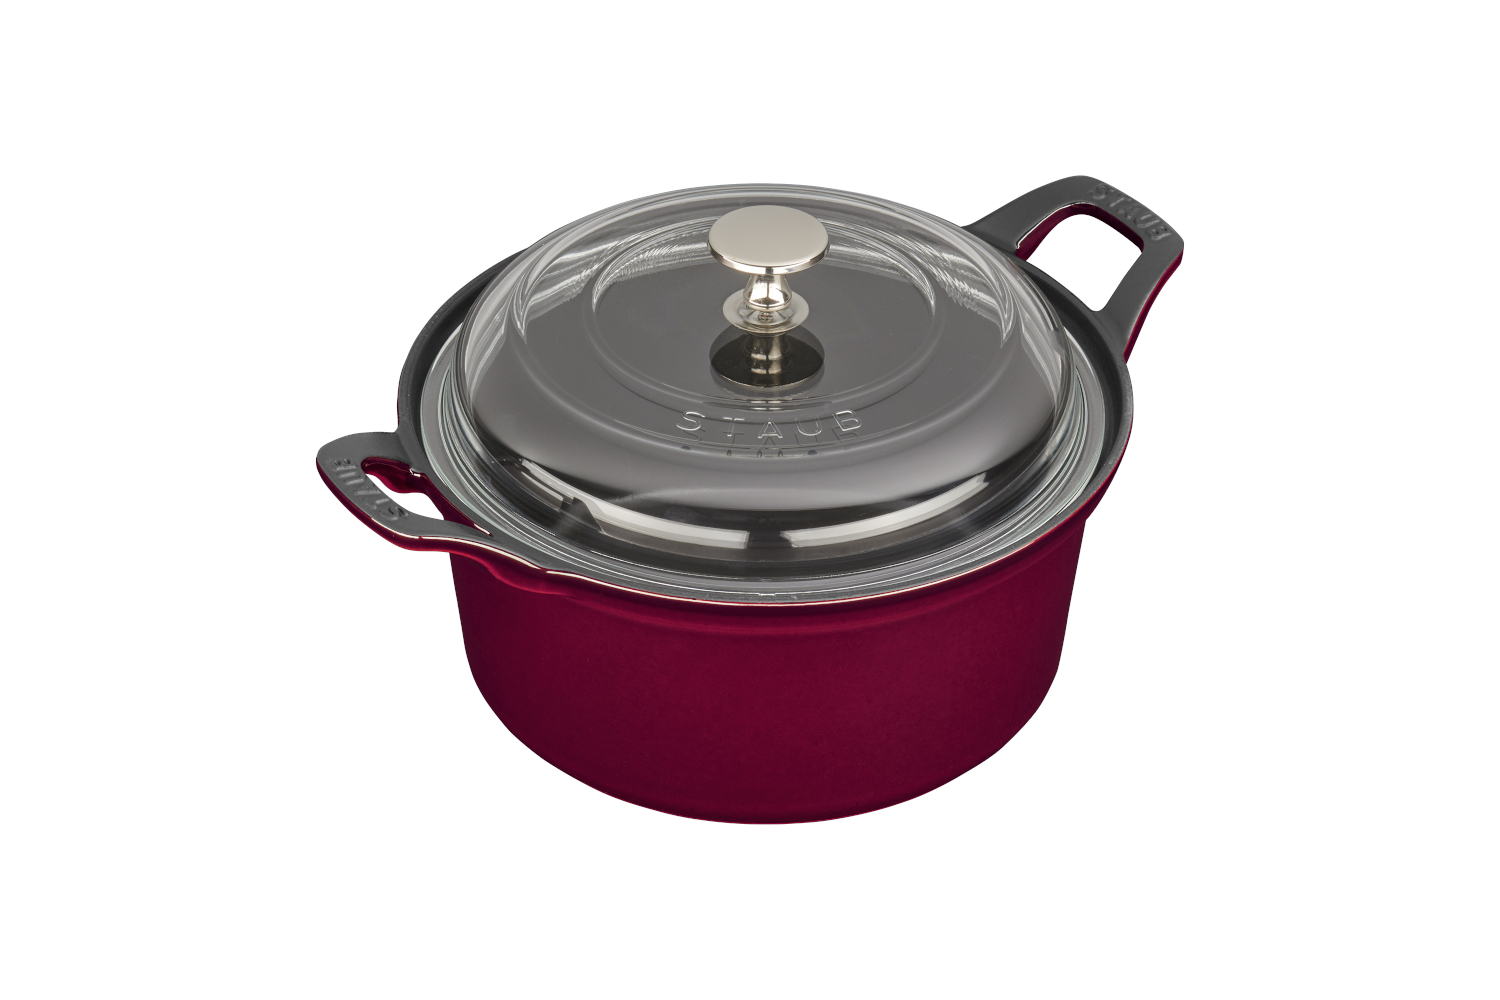 Staub Cast Iron 2 3/4 qt. Round La Coquette with Glass Lid - Grenadine